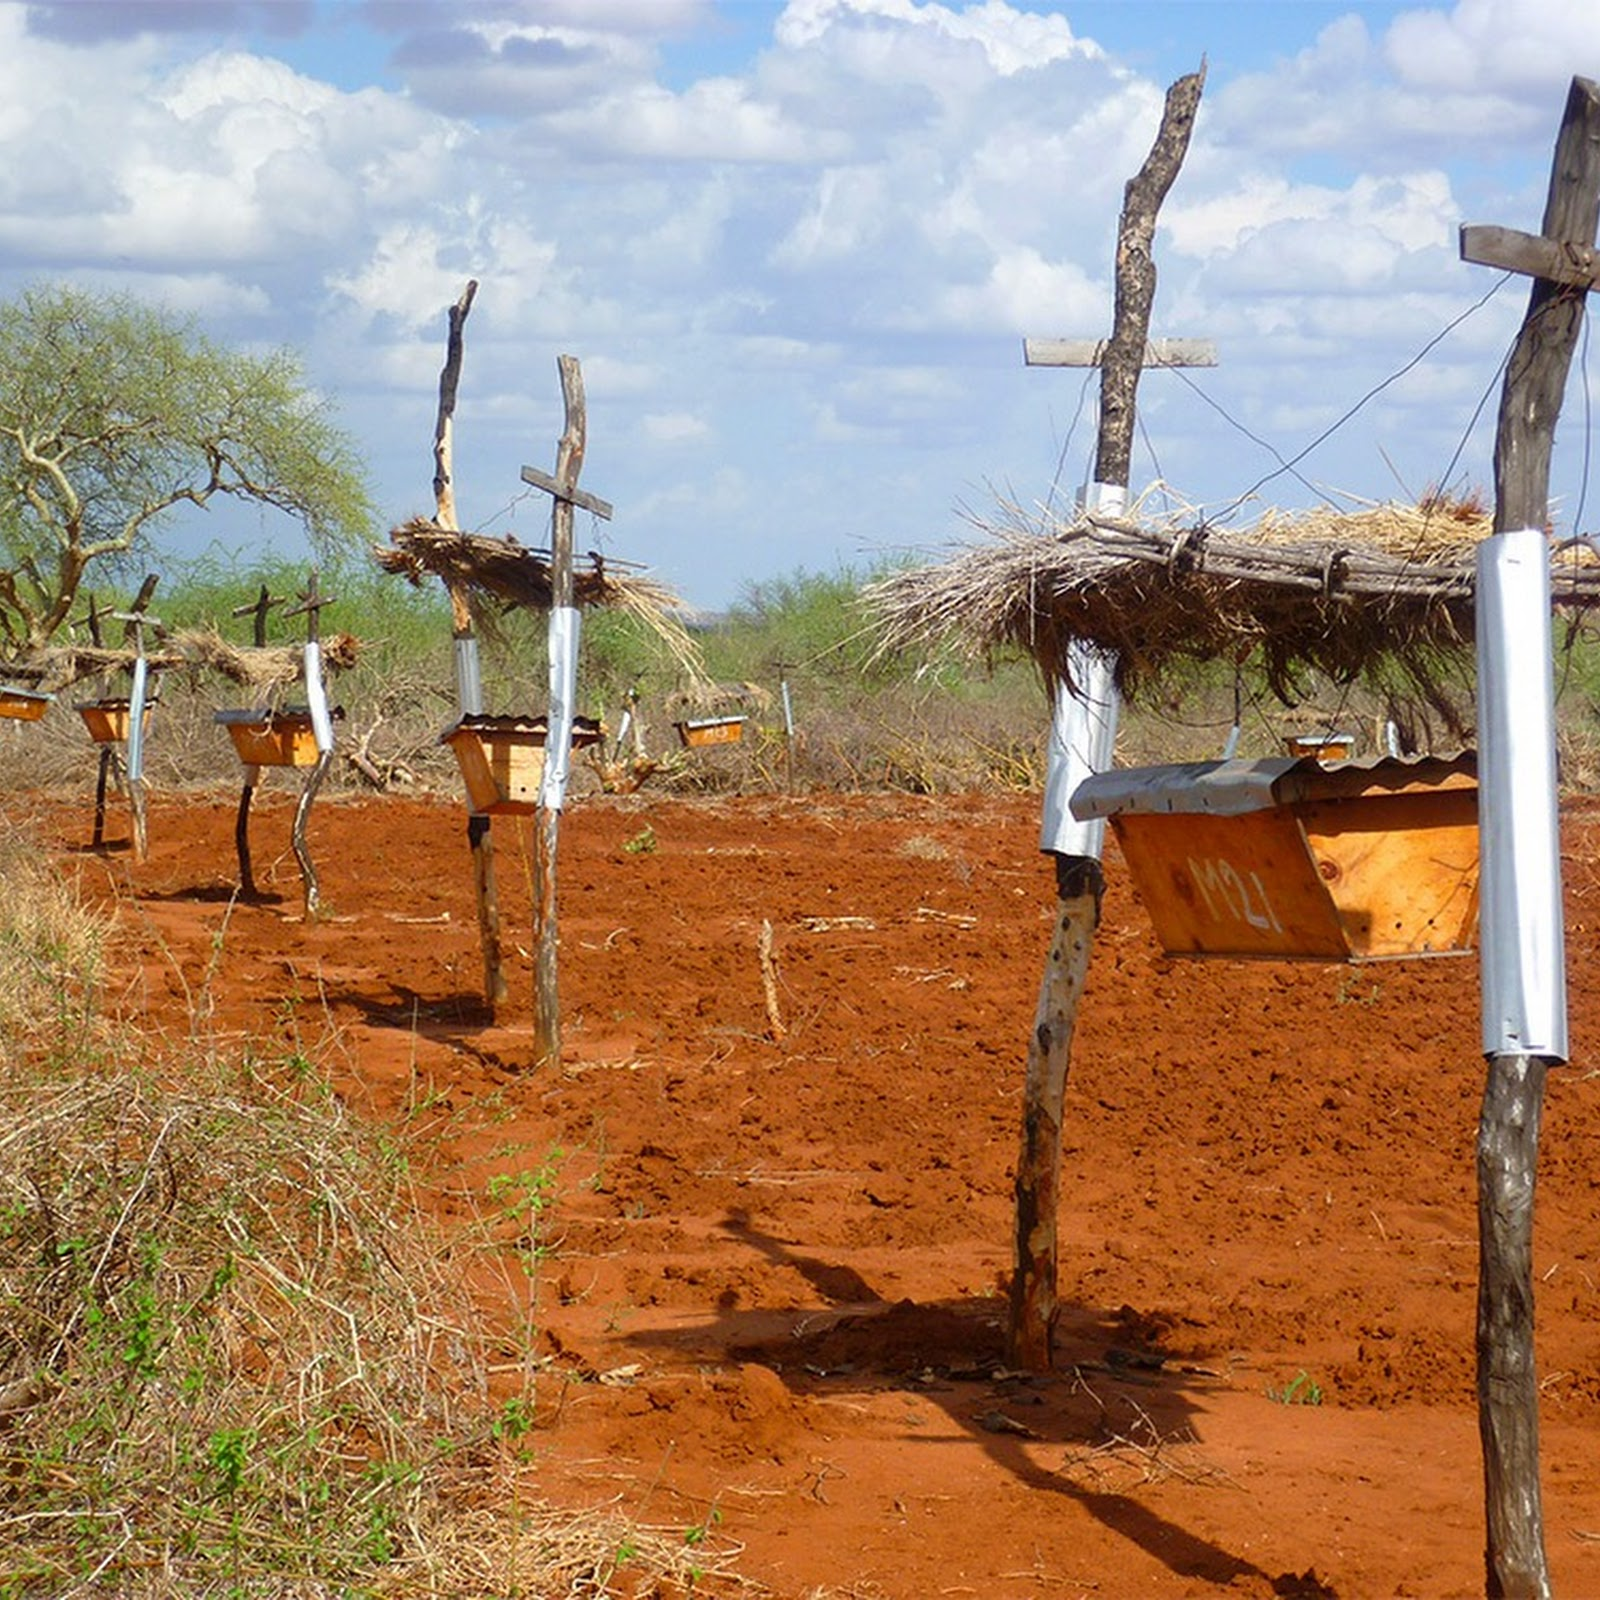 Beehive Fences: Using Bees To Keep Elephants Away From Crops